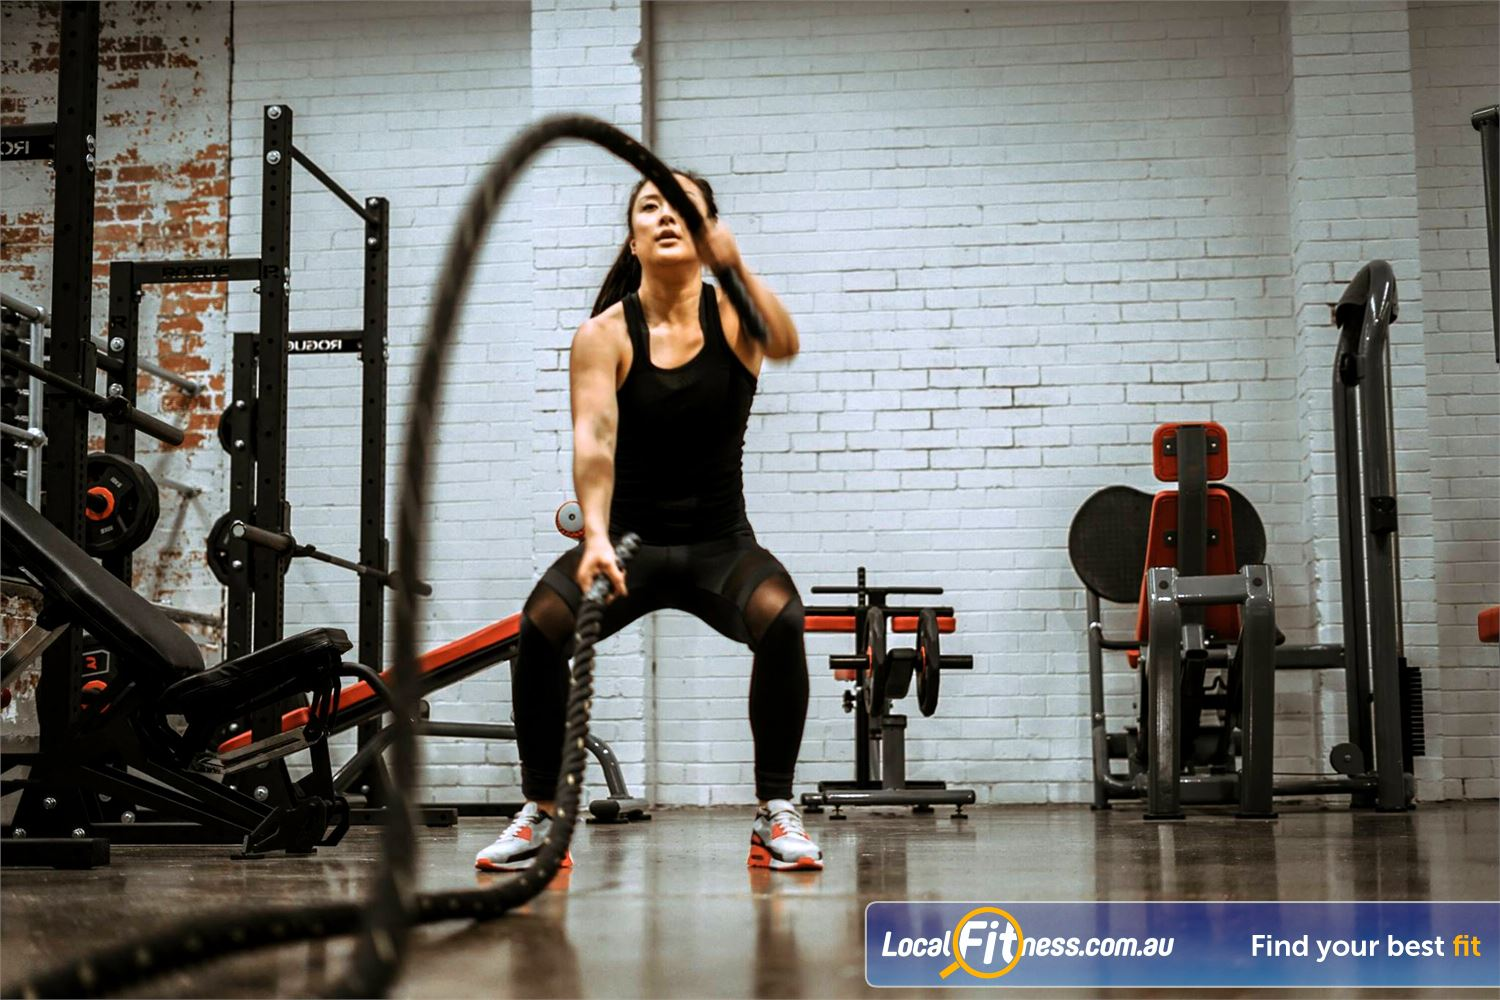 Dukes 24hr Gym Richmond Get into functional training at our Richmond gym.